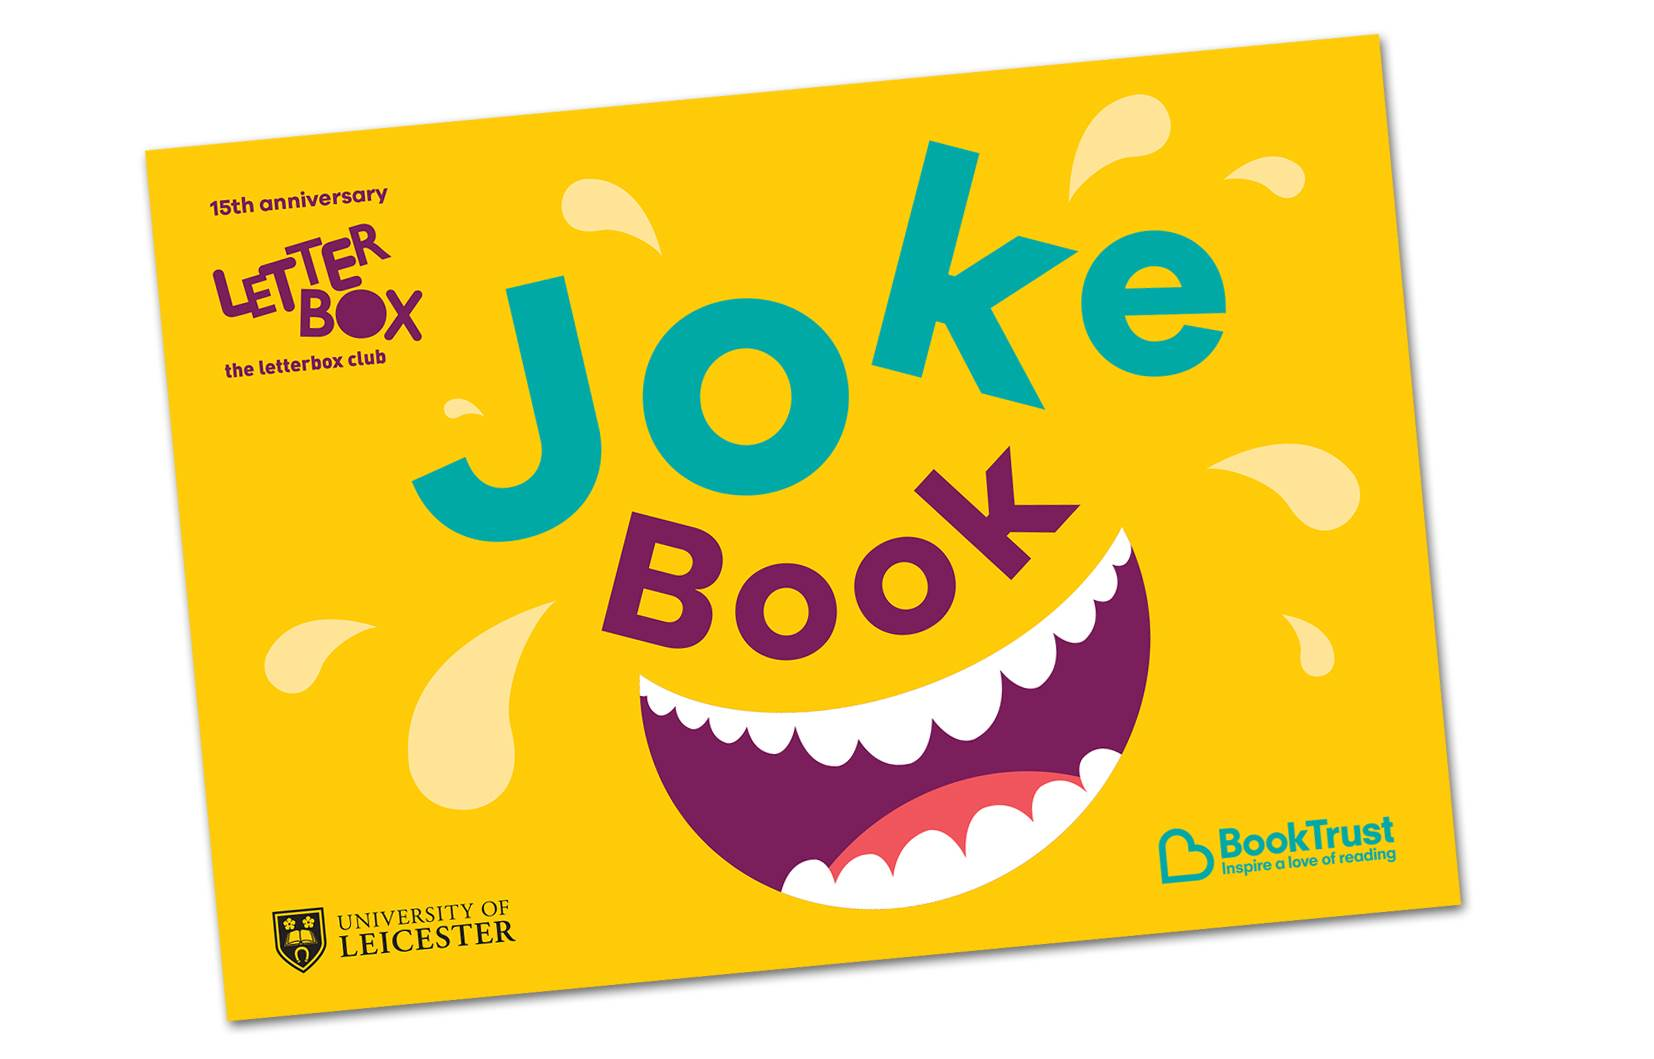 Letterbox Club 15th anniversary joke book